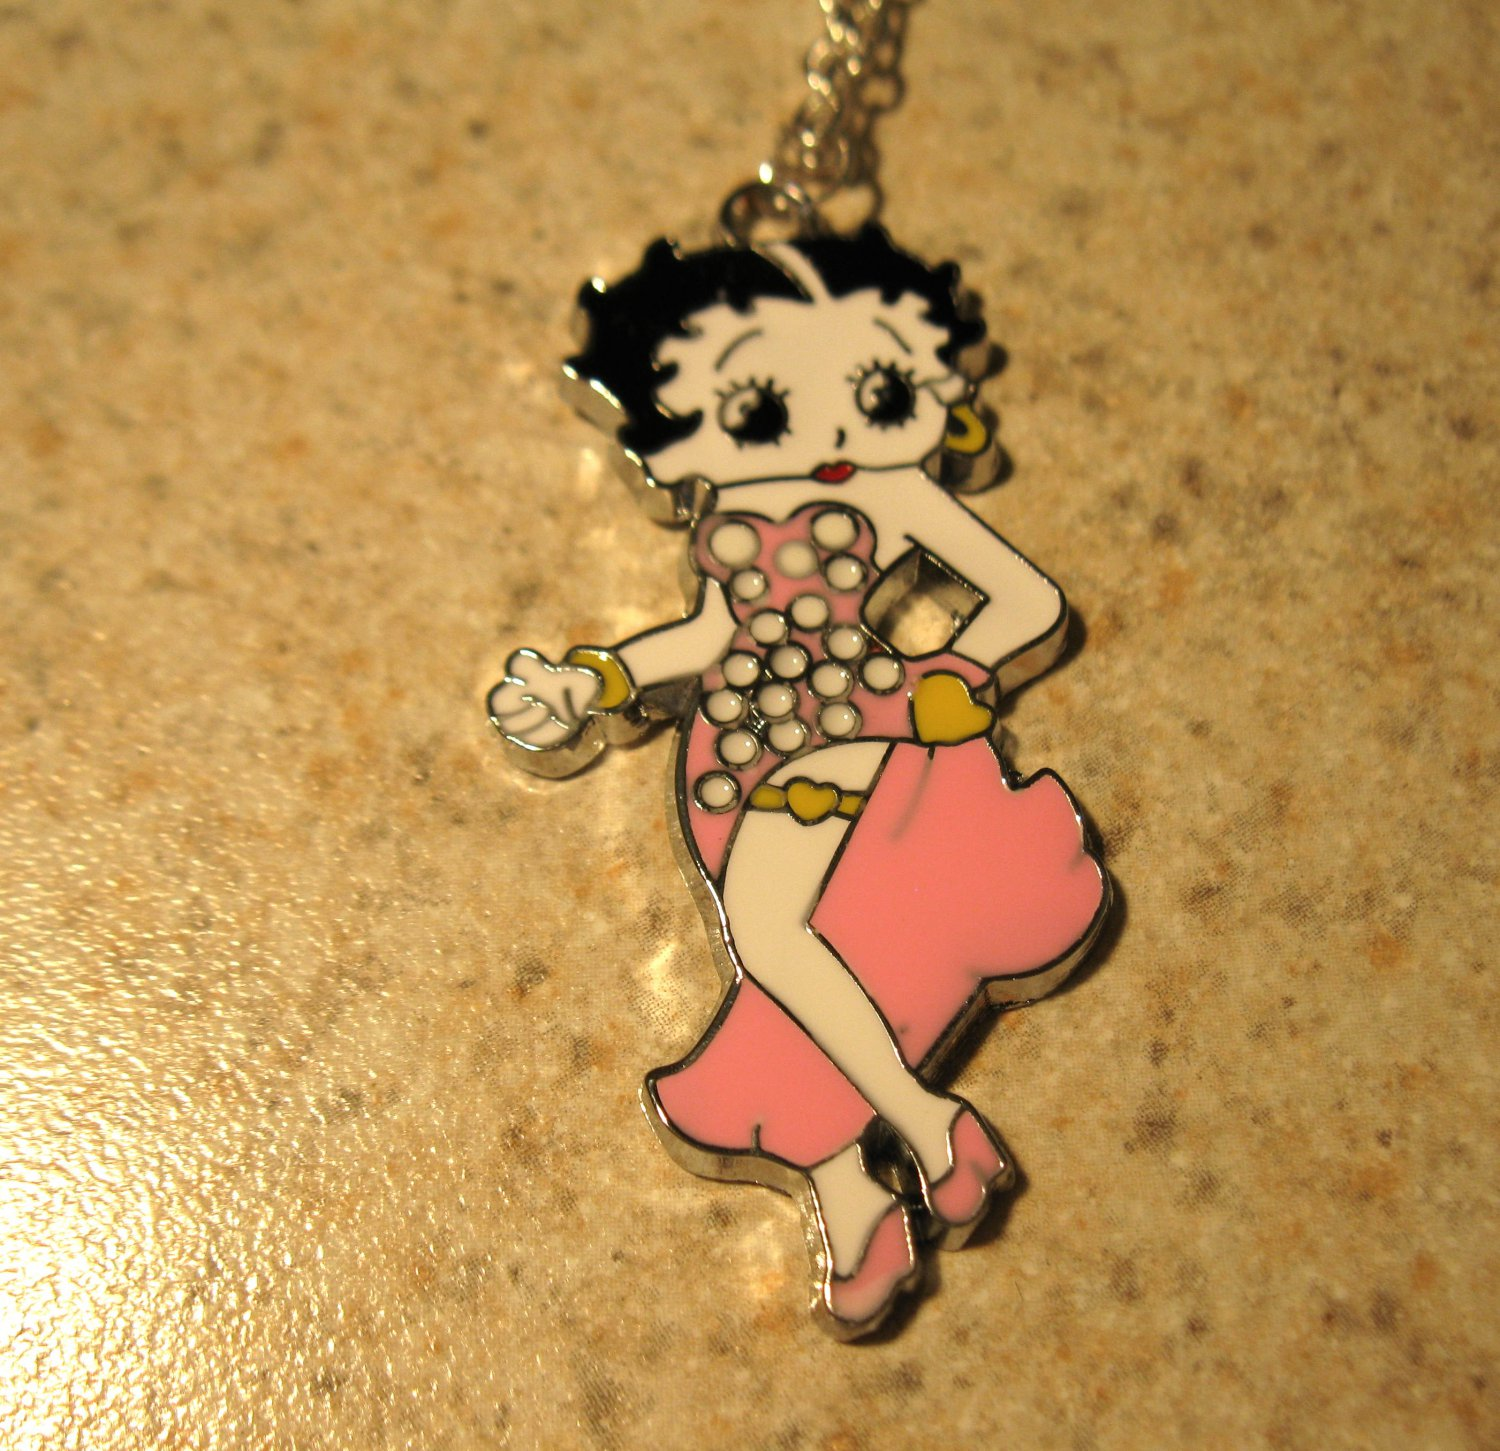 Pink Polka Dot Betty Boop Necklace & Pendant New #634